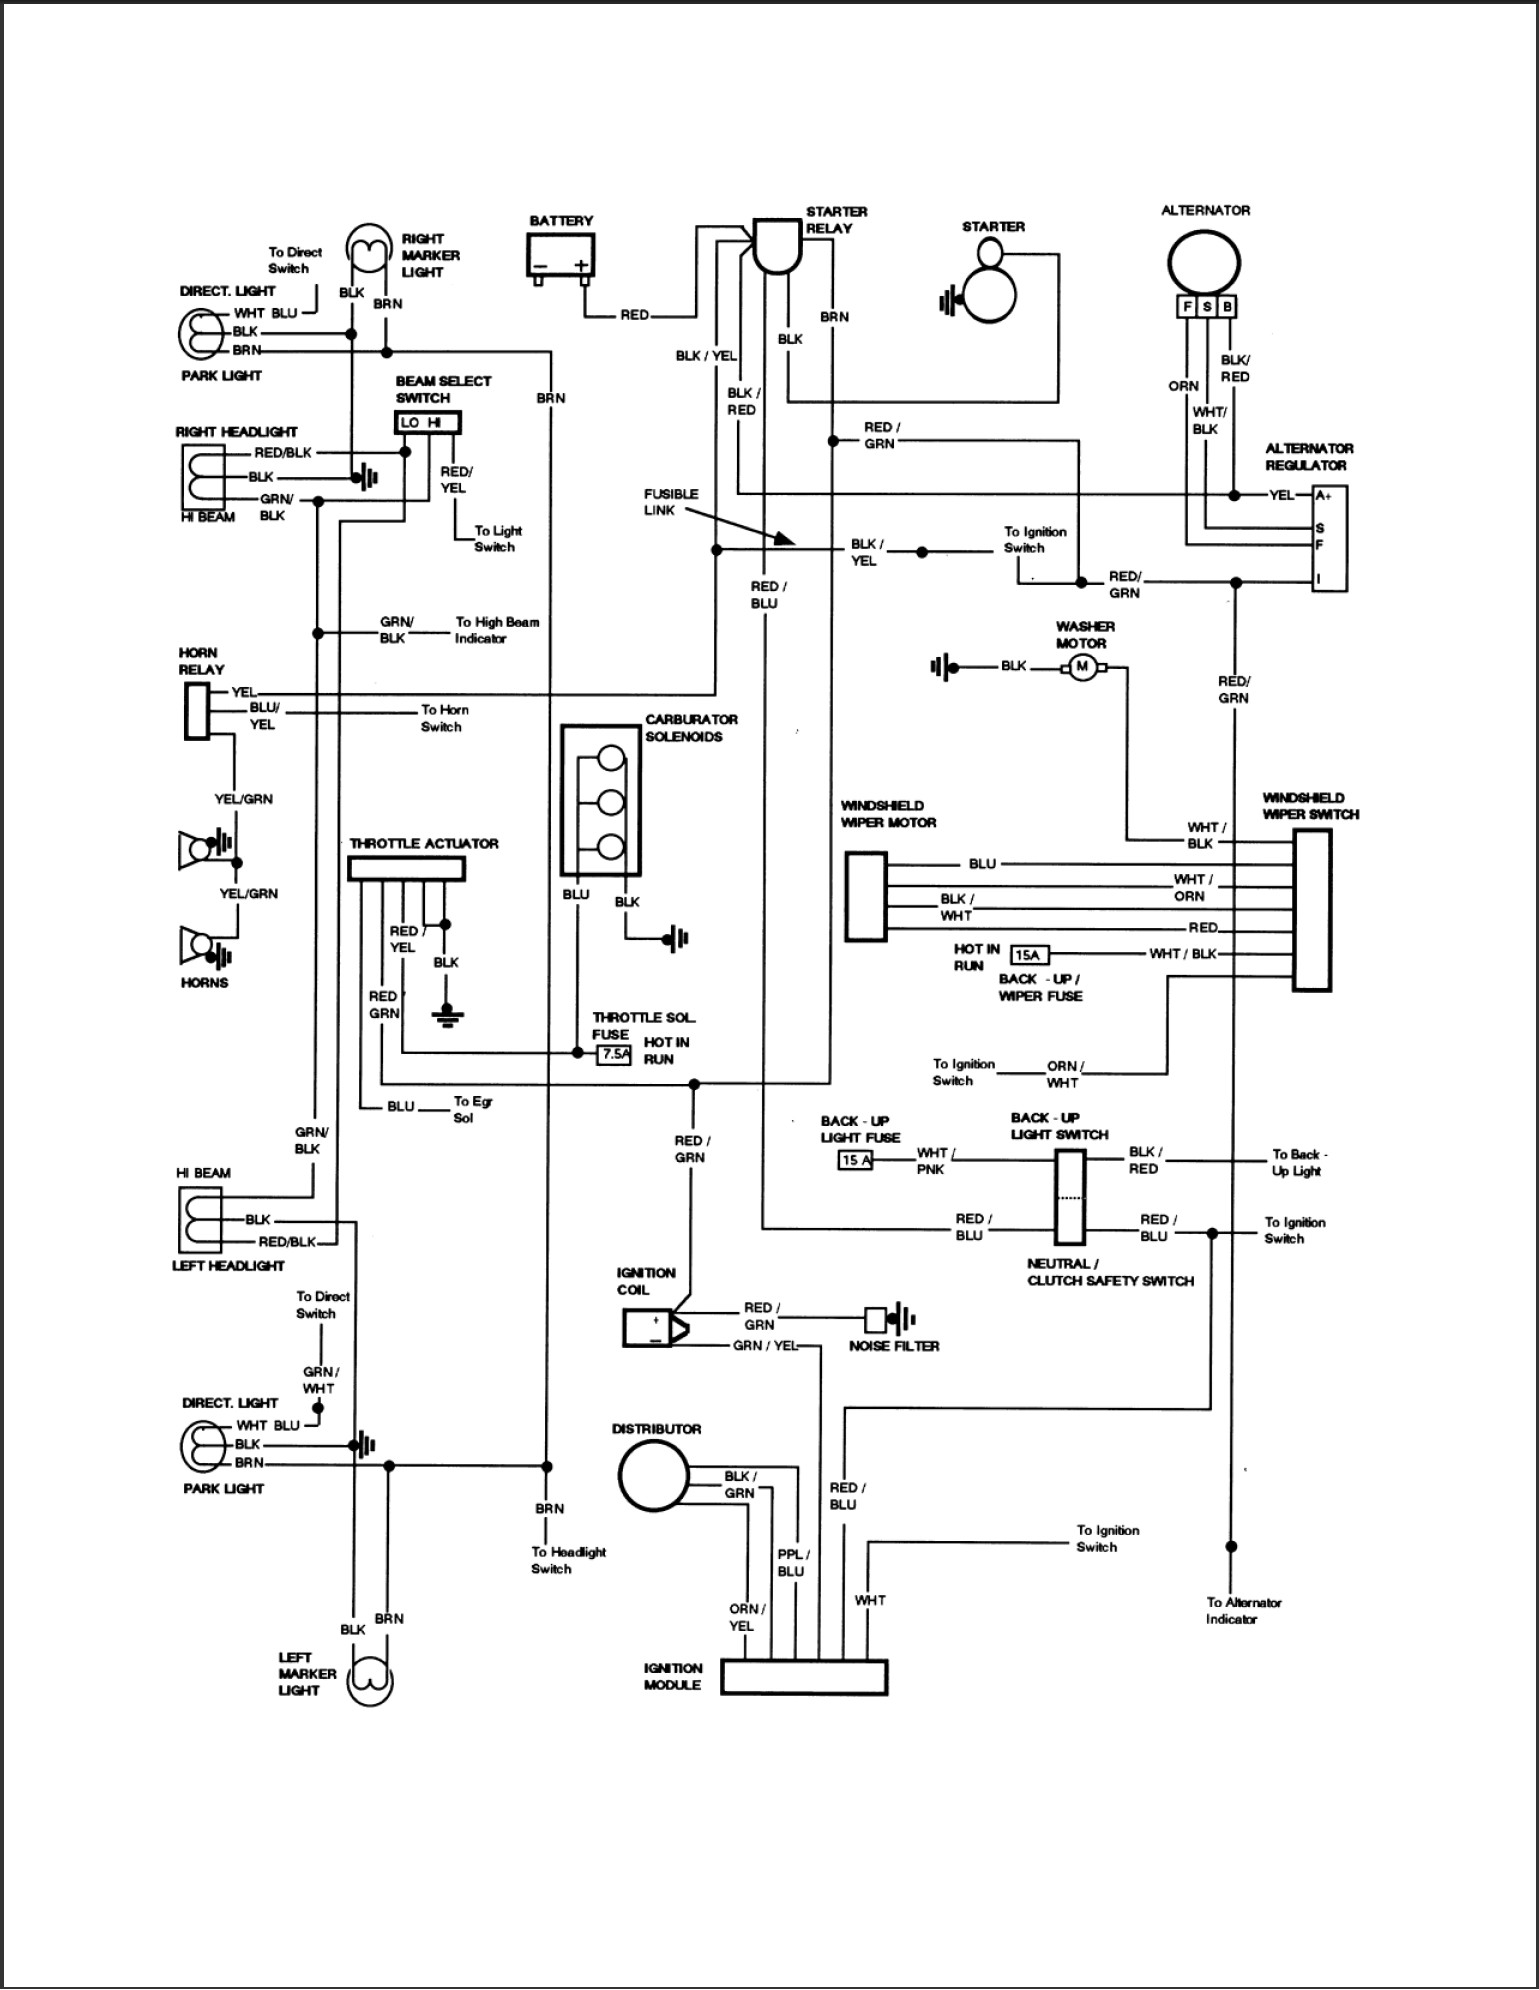 2009 sterling wiring diagram